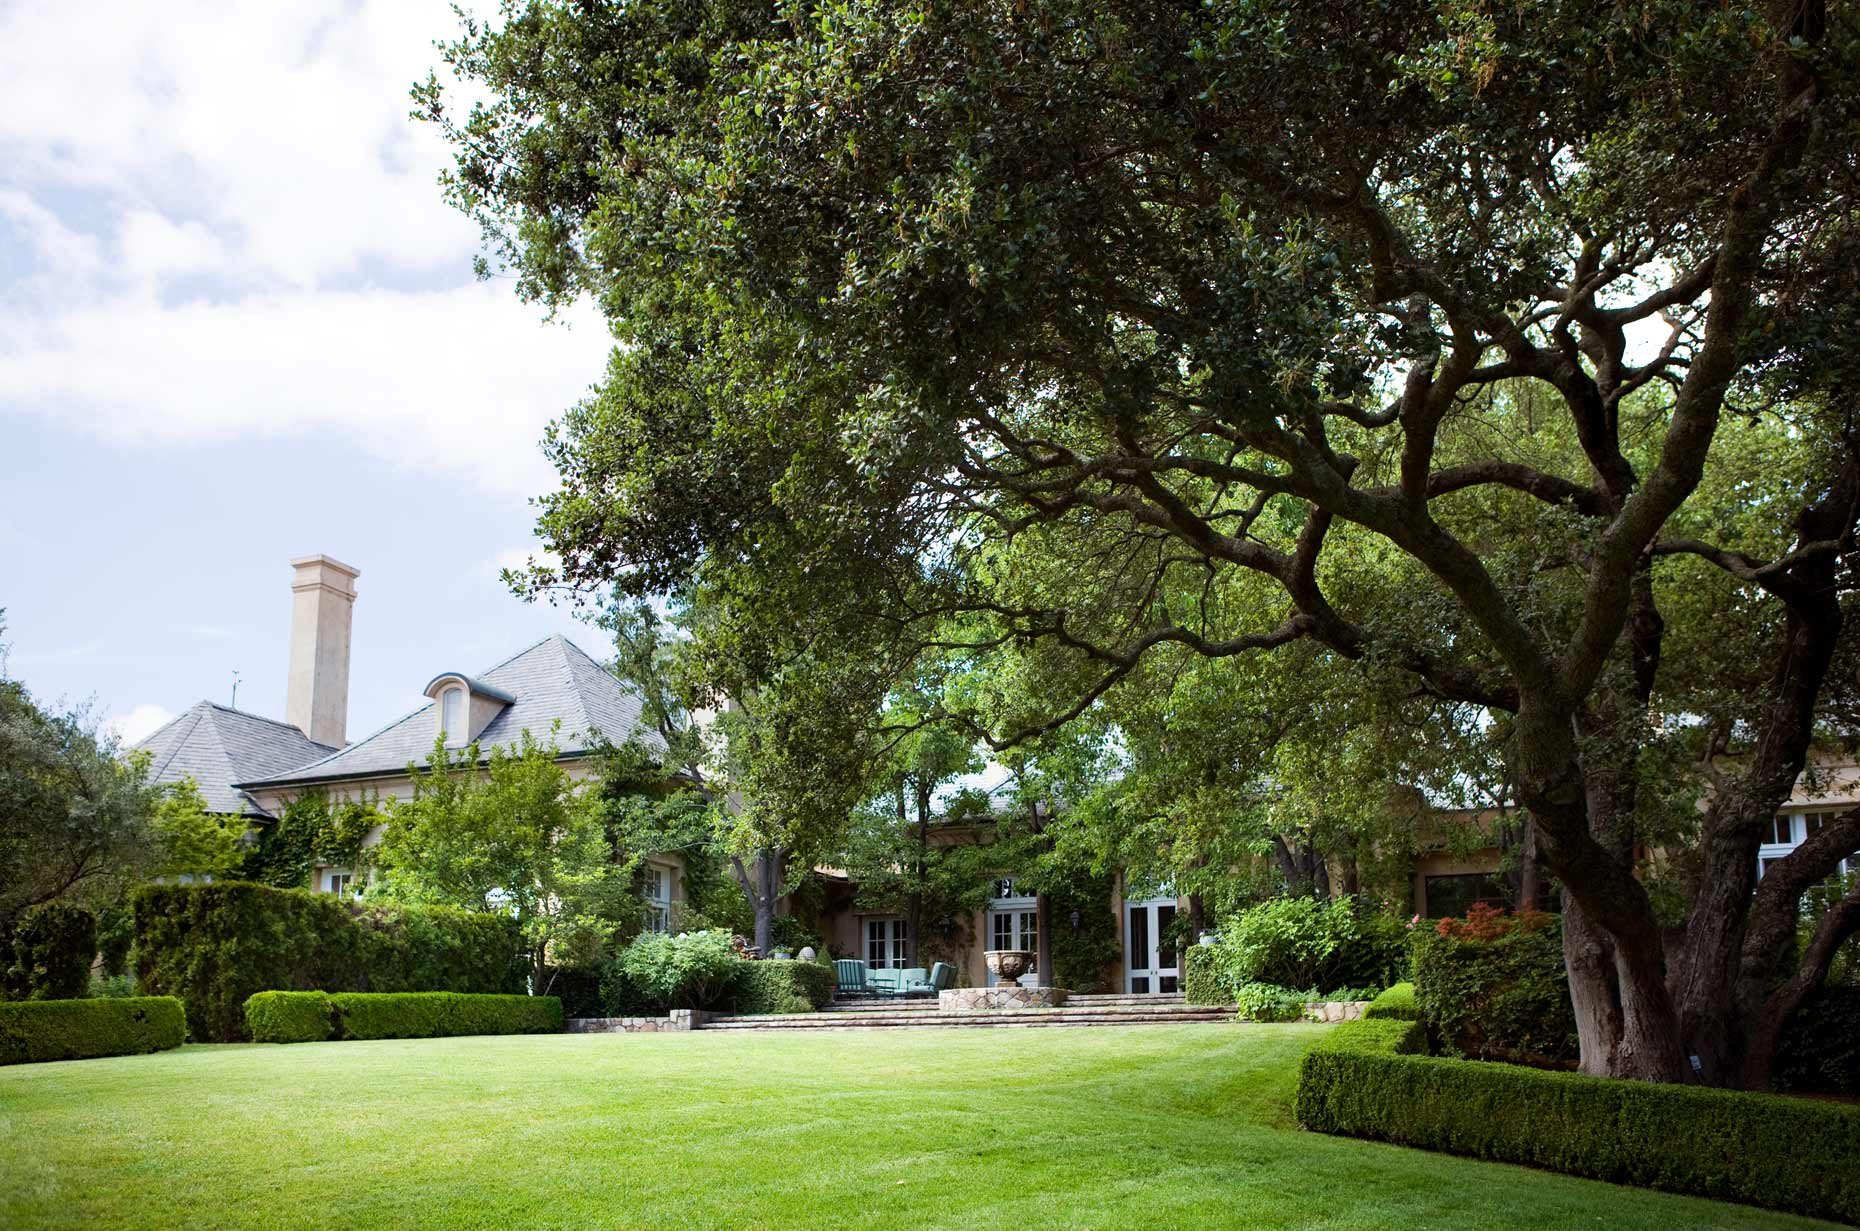 Napa_Sloan_Estate_oak_tree_lawn_6447_